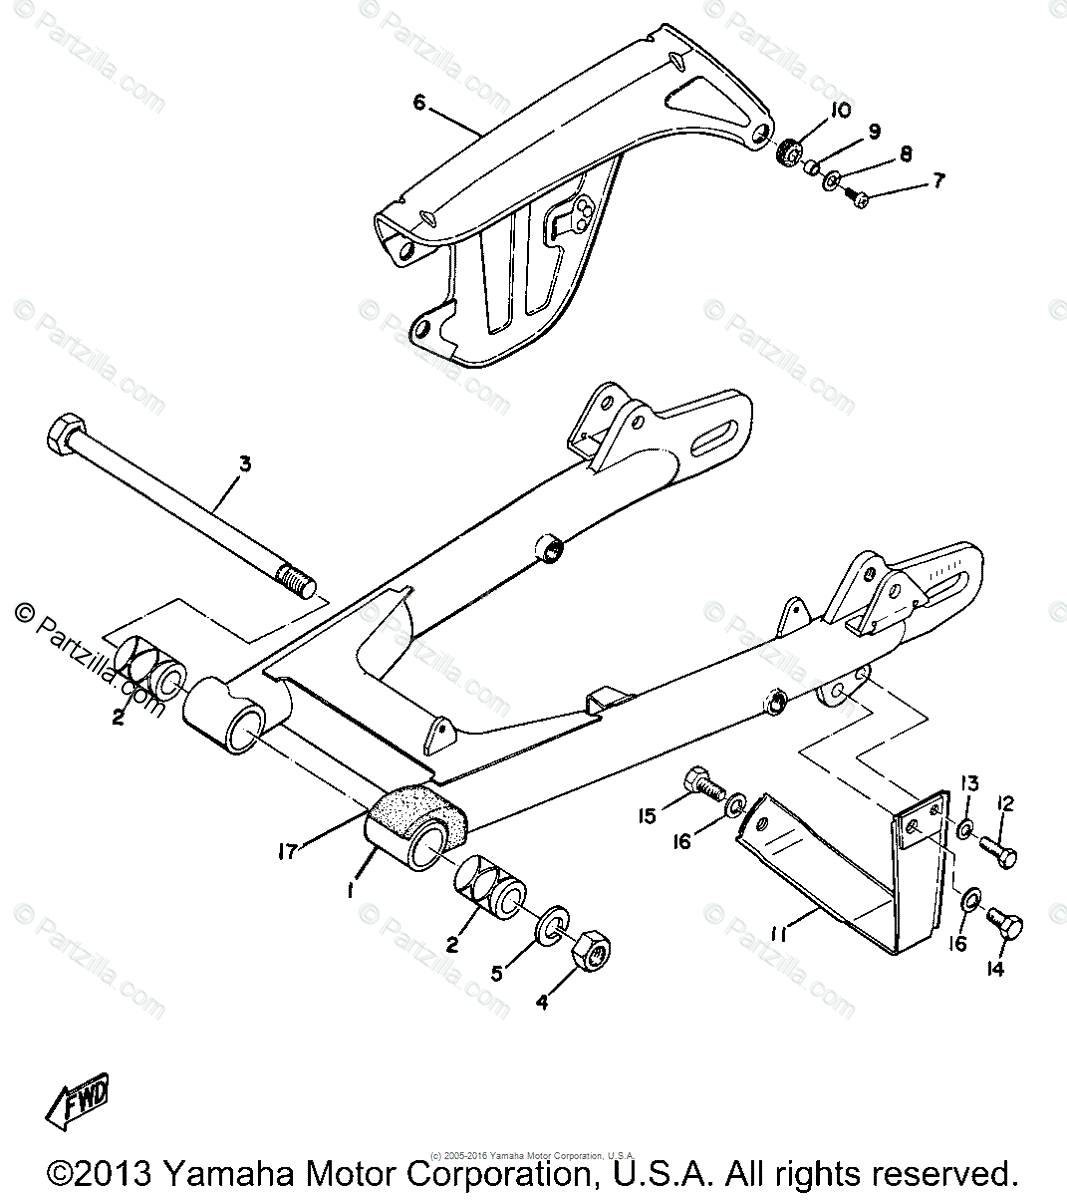 Yamaha Motorcycle Oem Parts Diagram For Rear Arm